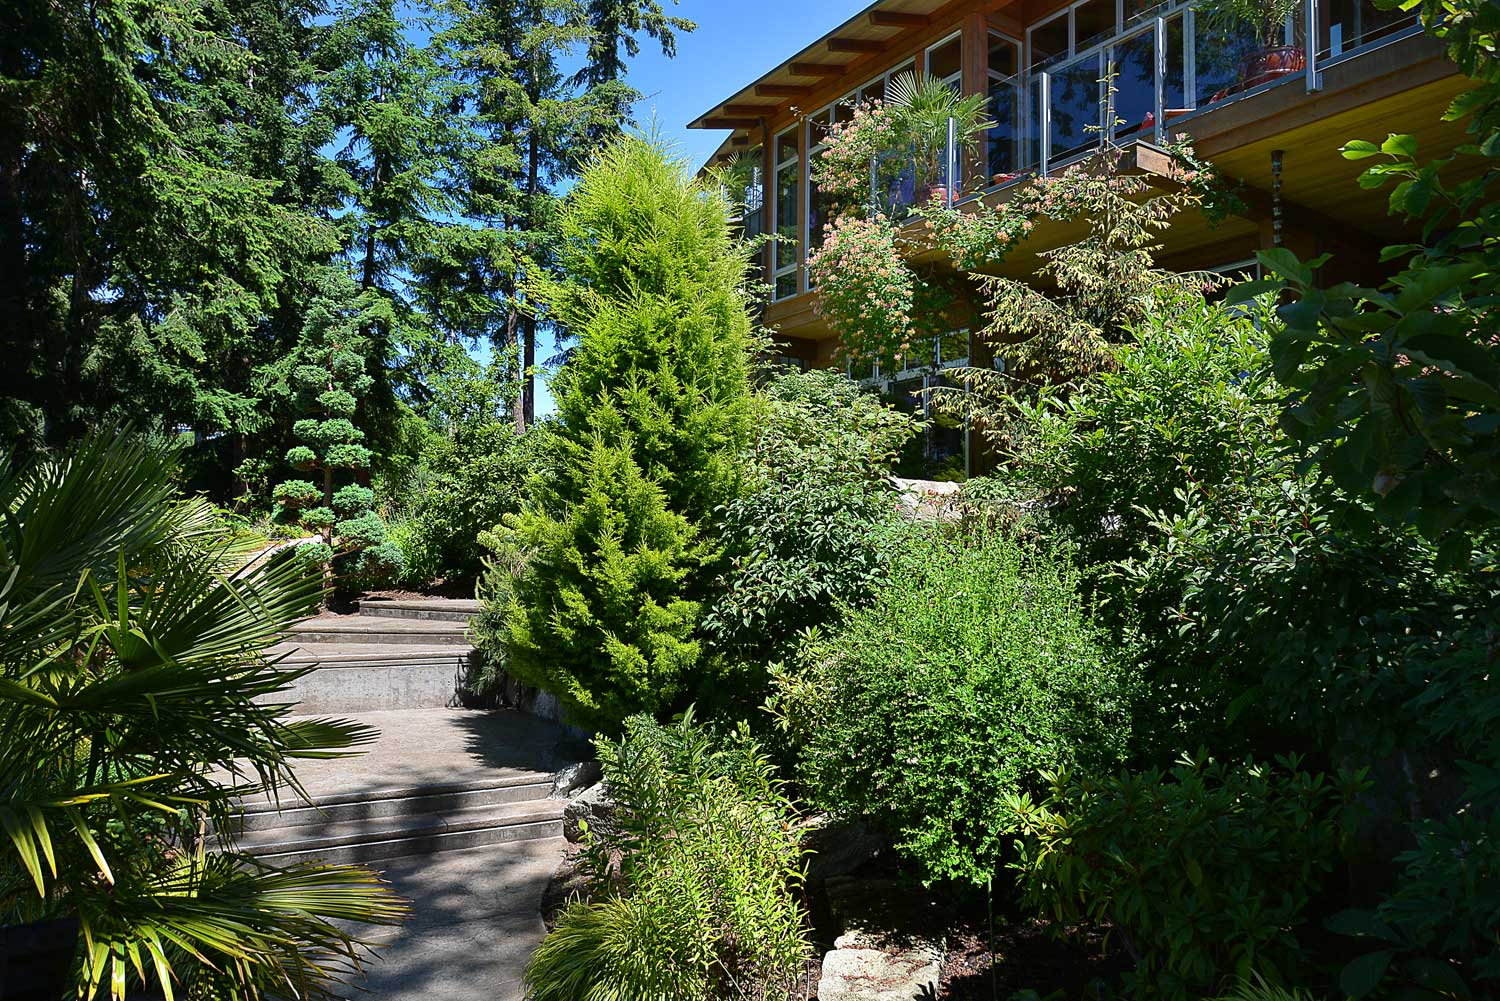 Stairs wind up through the lush, green garden of this luxury home, for rent by a private owner.